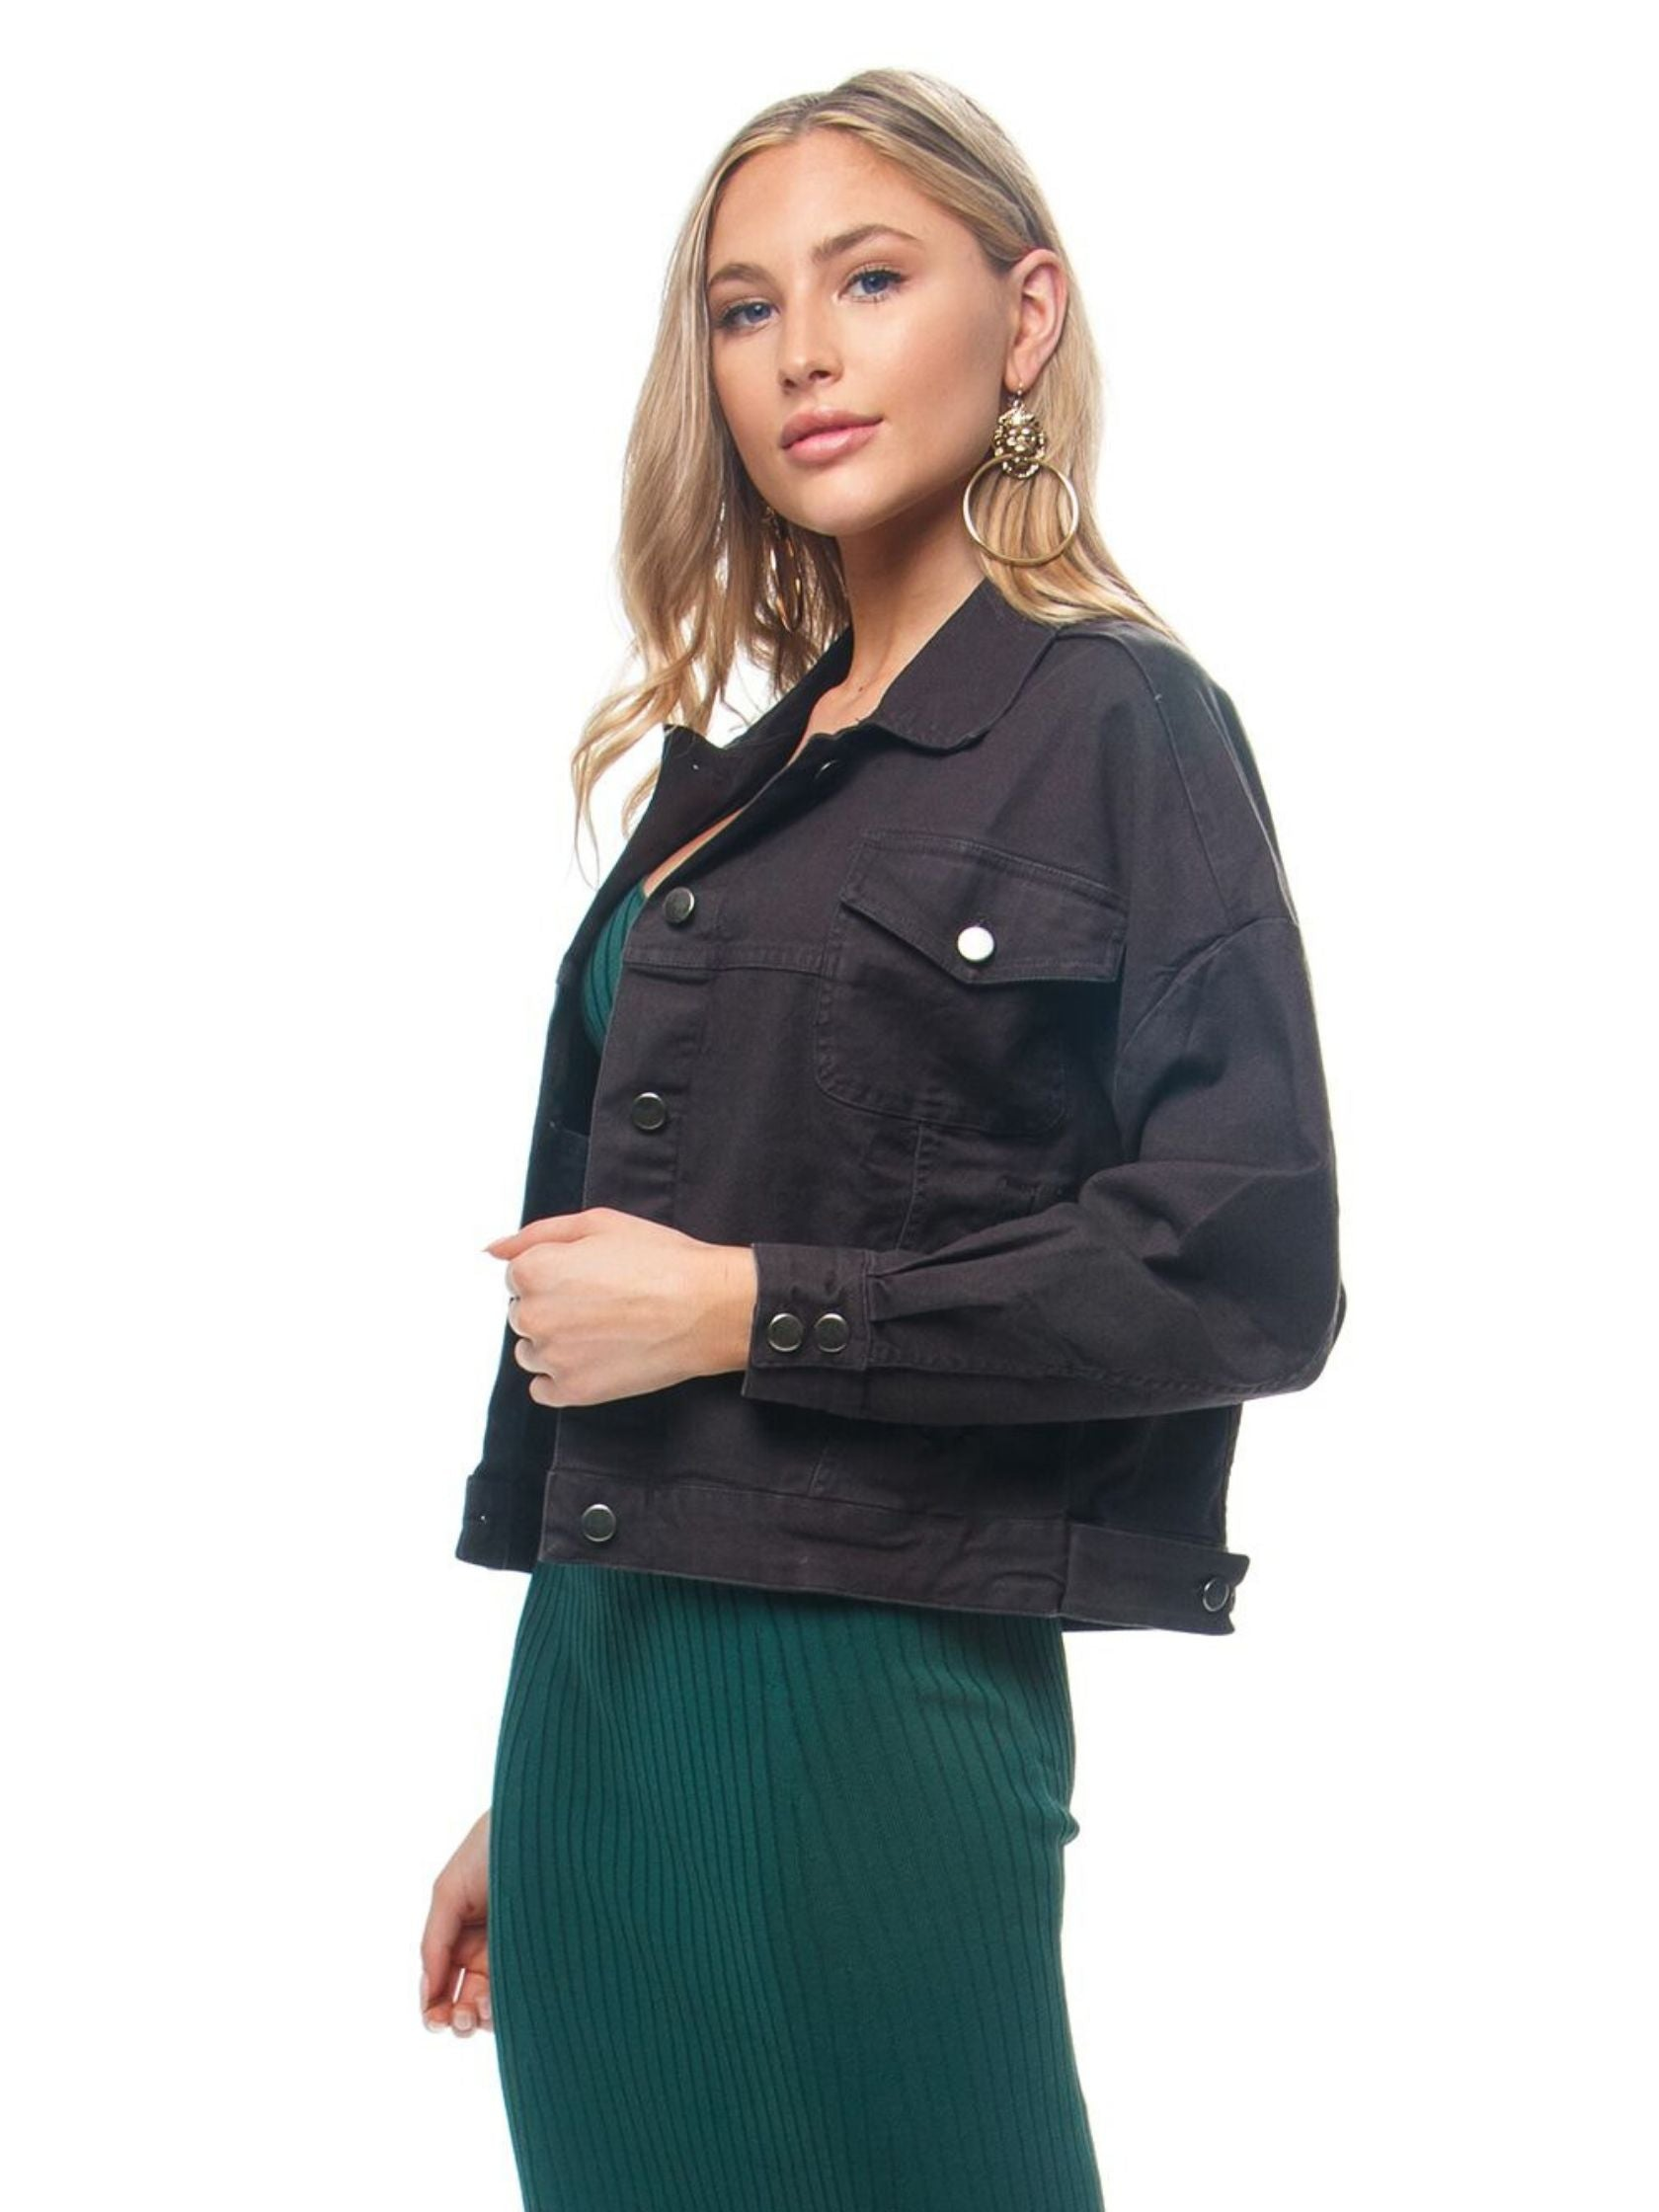 Women wearing a jacket rental from Chaser called Vintage Canvas Drop Shoulder Trucker Jacket